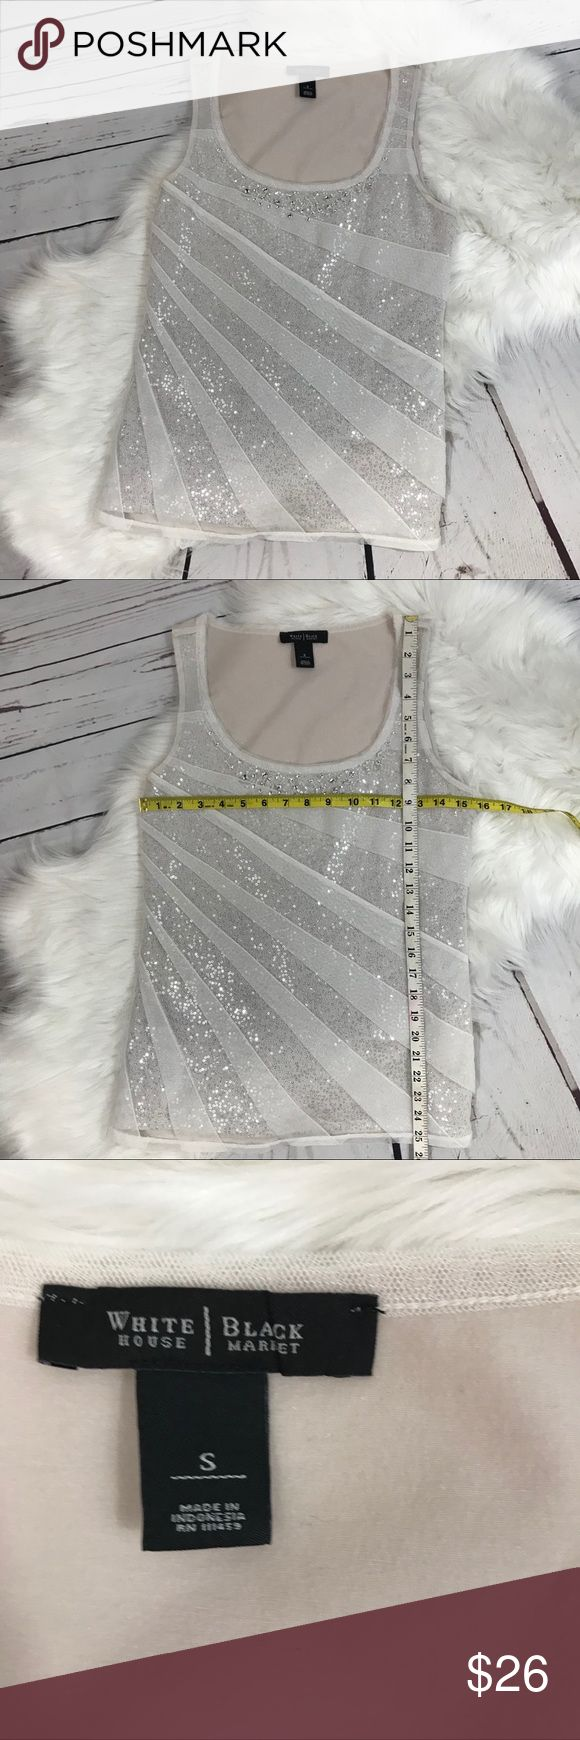 WHBM small white tiered sequin tank top WHBM small white tiered sequin tank top White House Black Market  White is almost a winter white or had a hint of silver to it    (And more of off white on the back)  Y311 White House Black Market Tops Tank Tops